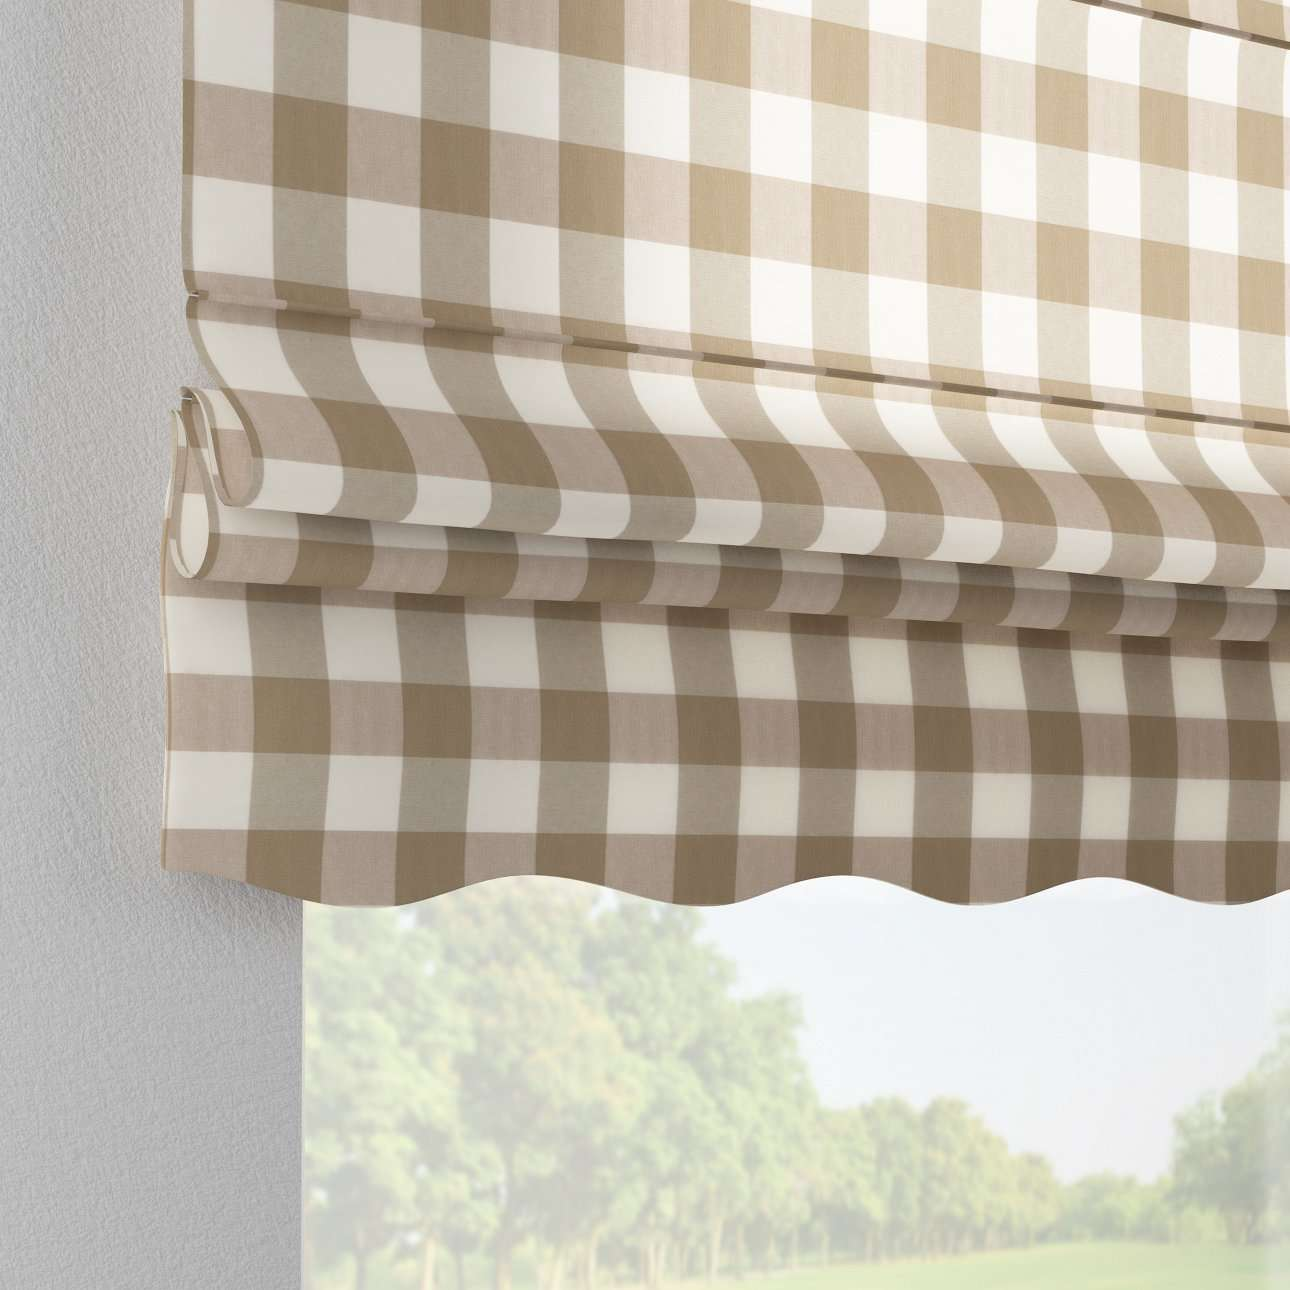 Florence roman blind  80 x 170 cm (31.5 x 67 inch) in collection Quadro, fabric: 136-08